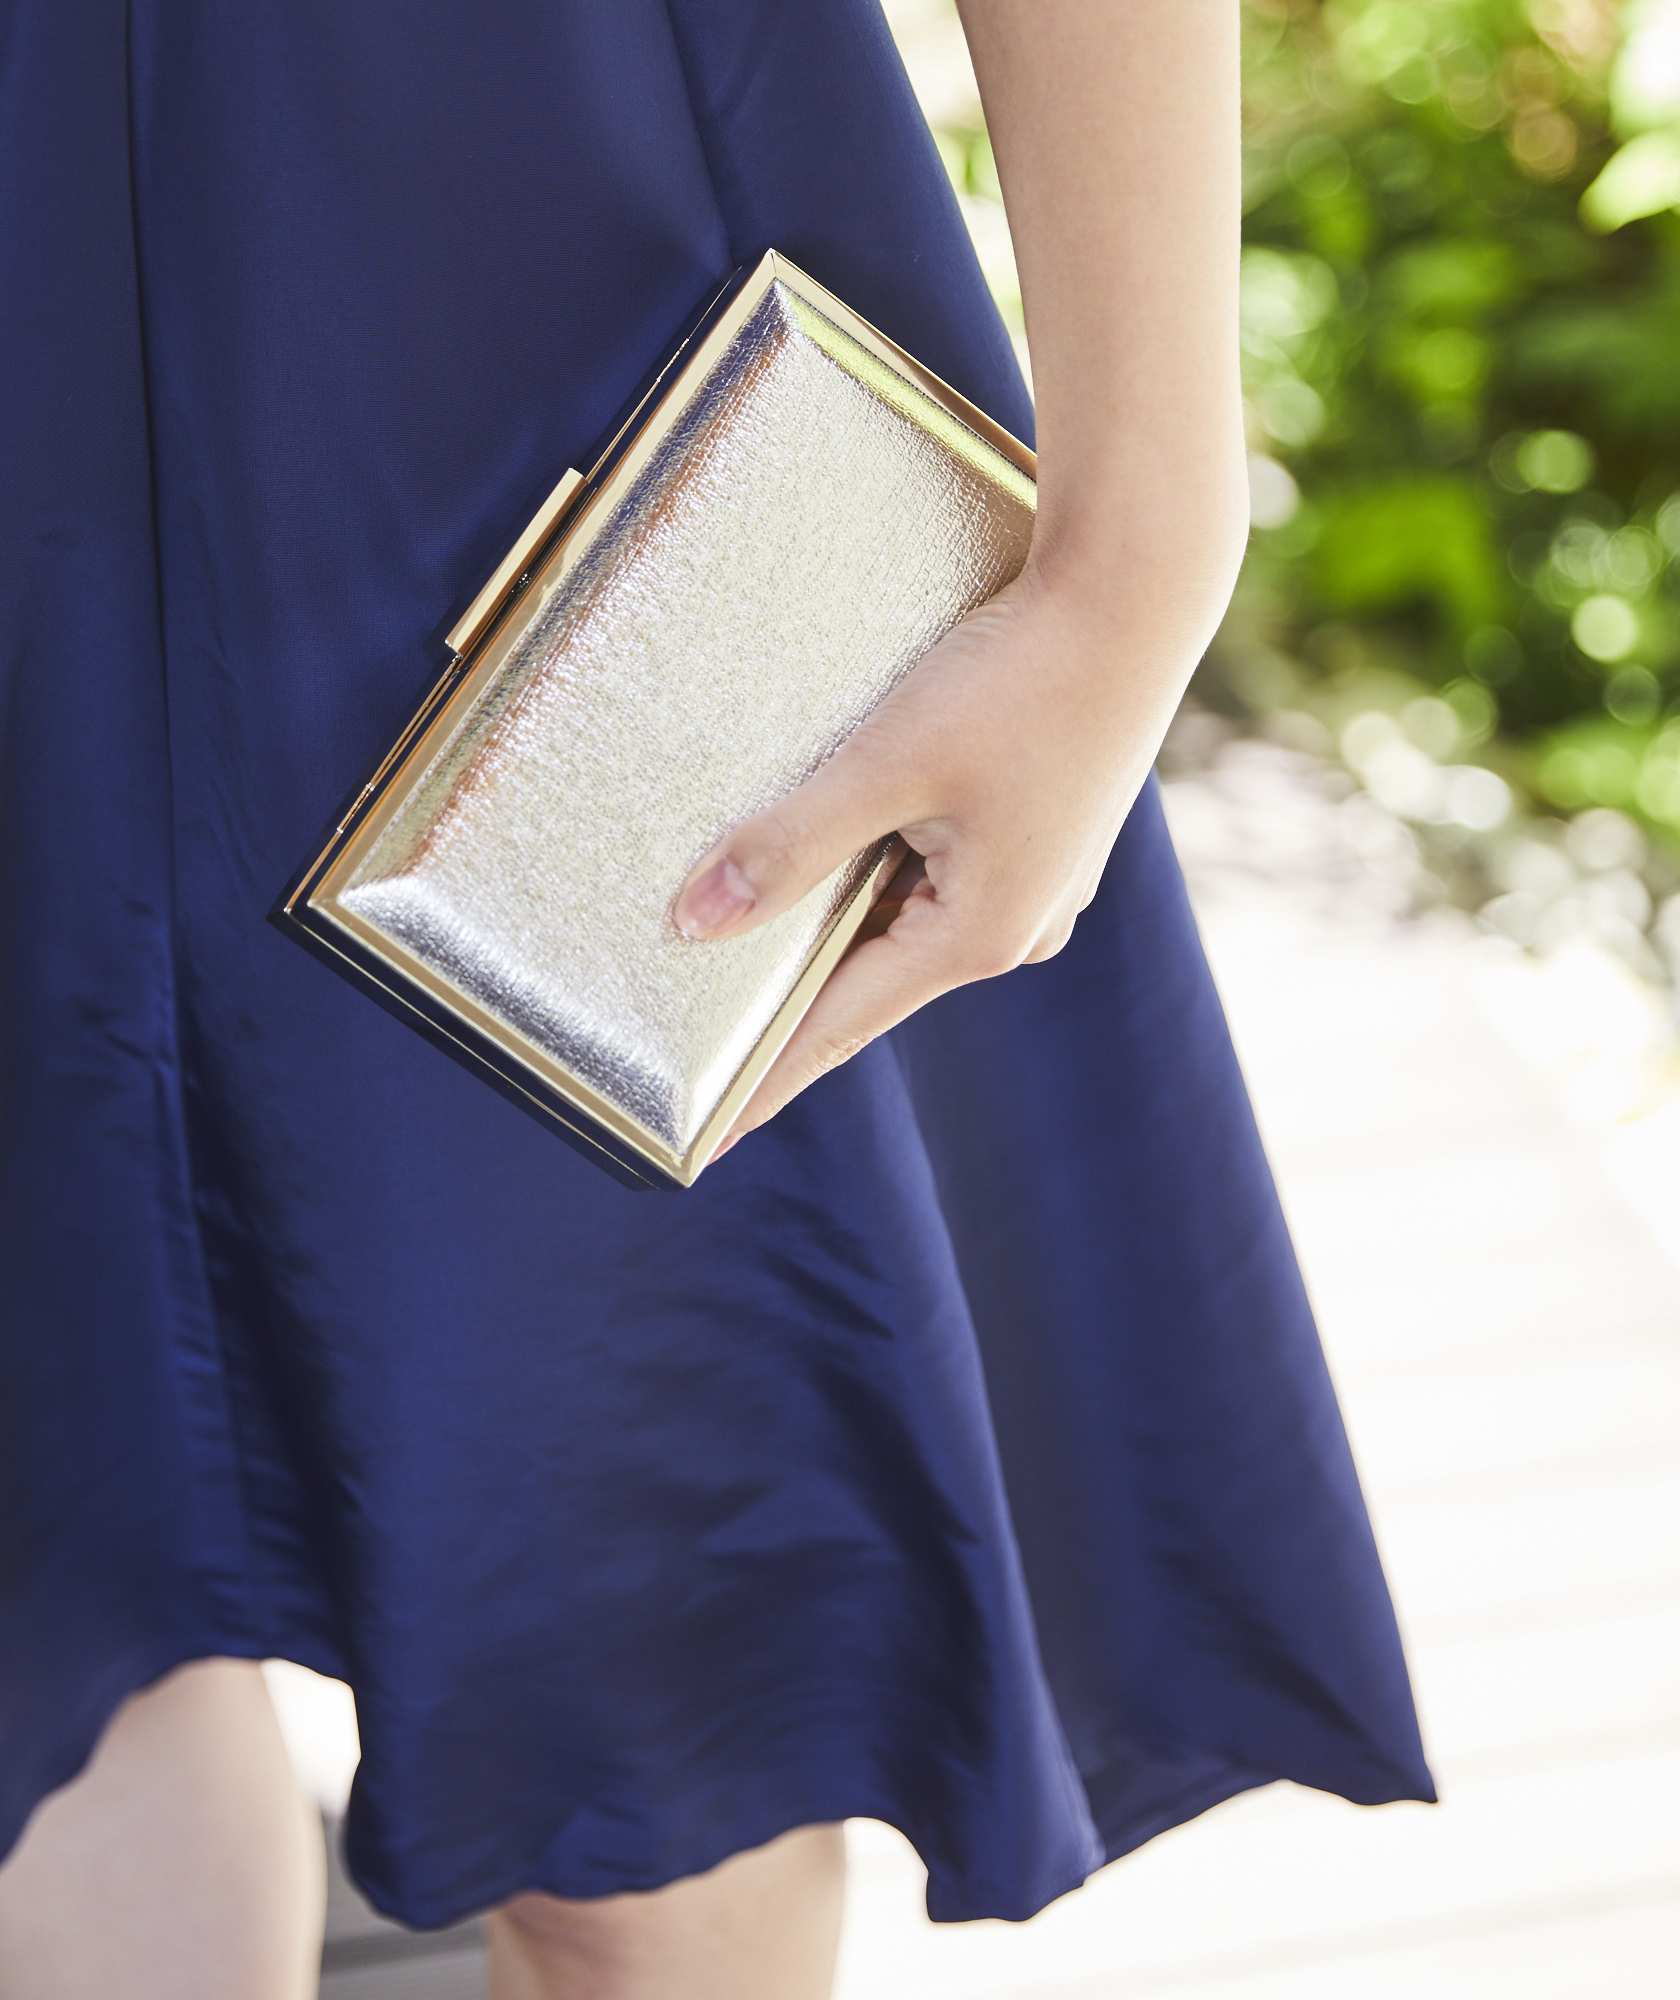 Silver Simple Square Clutch bag